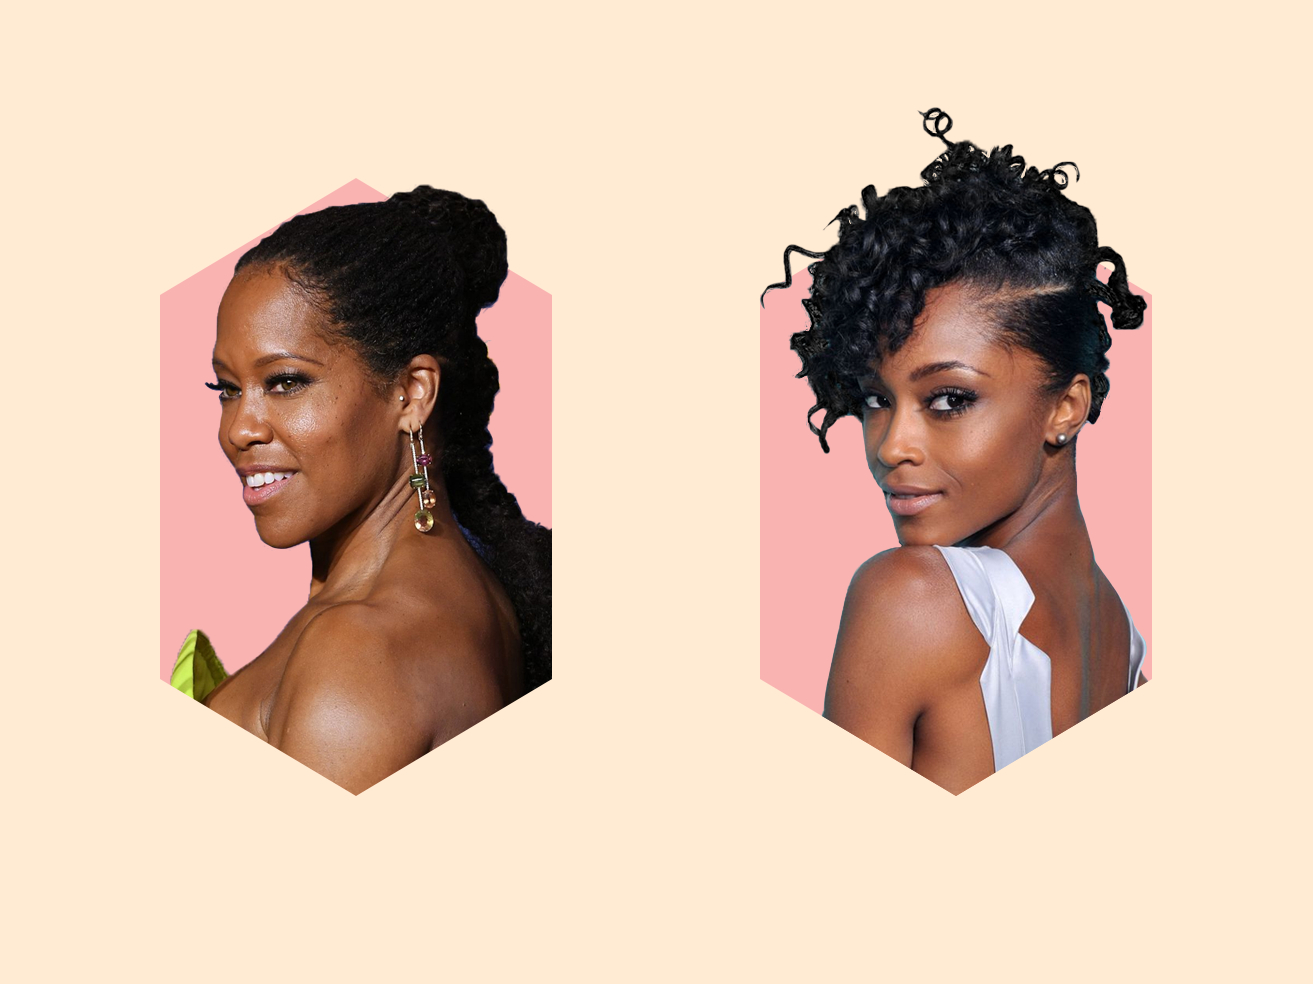 30 Easy Natural Hairstyles For Black Women – Short, Medium & Long With Regard To Trendy Medium Haircuts For Black Women With Natural Hair (Gallery 18 of 20)